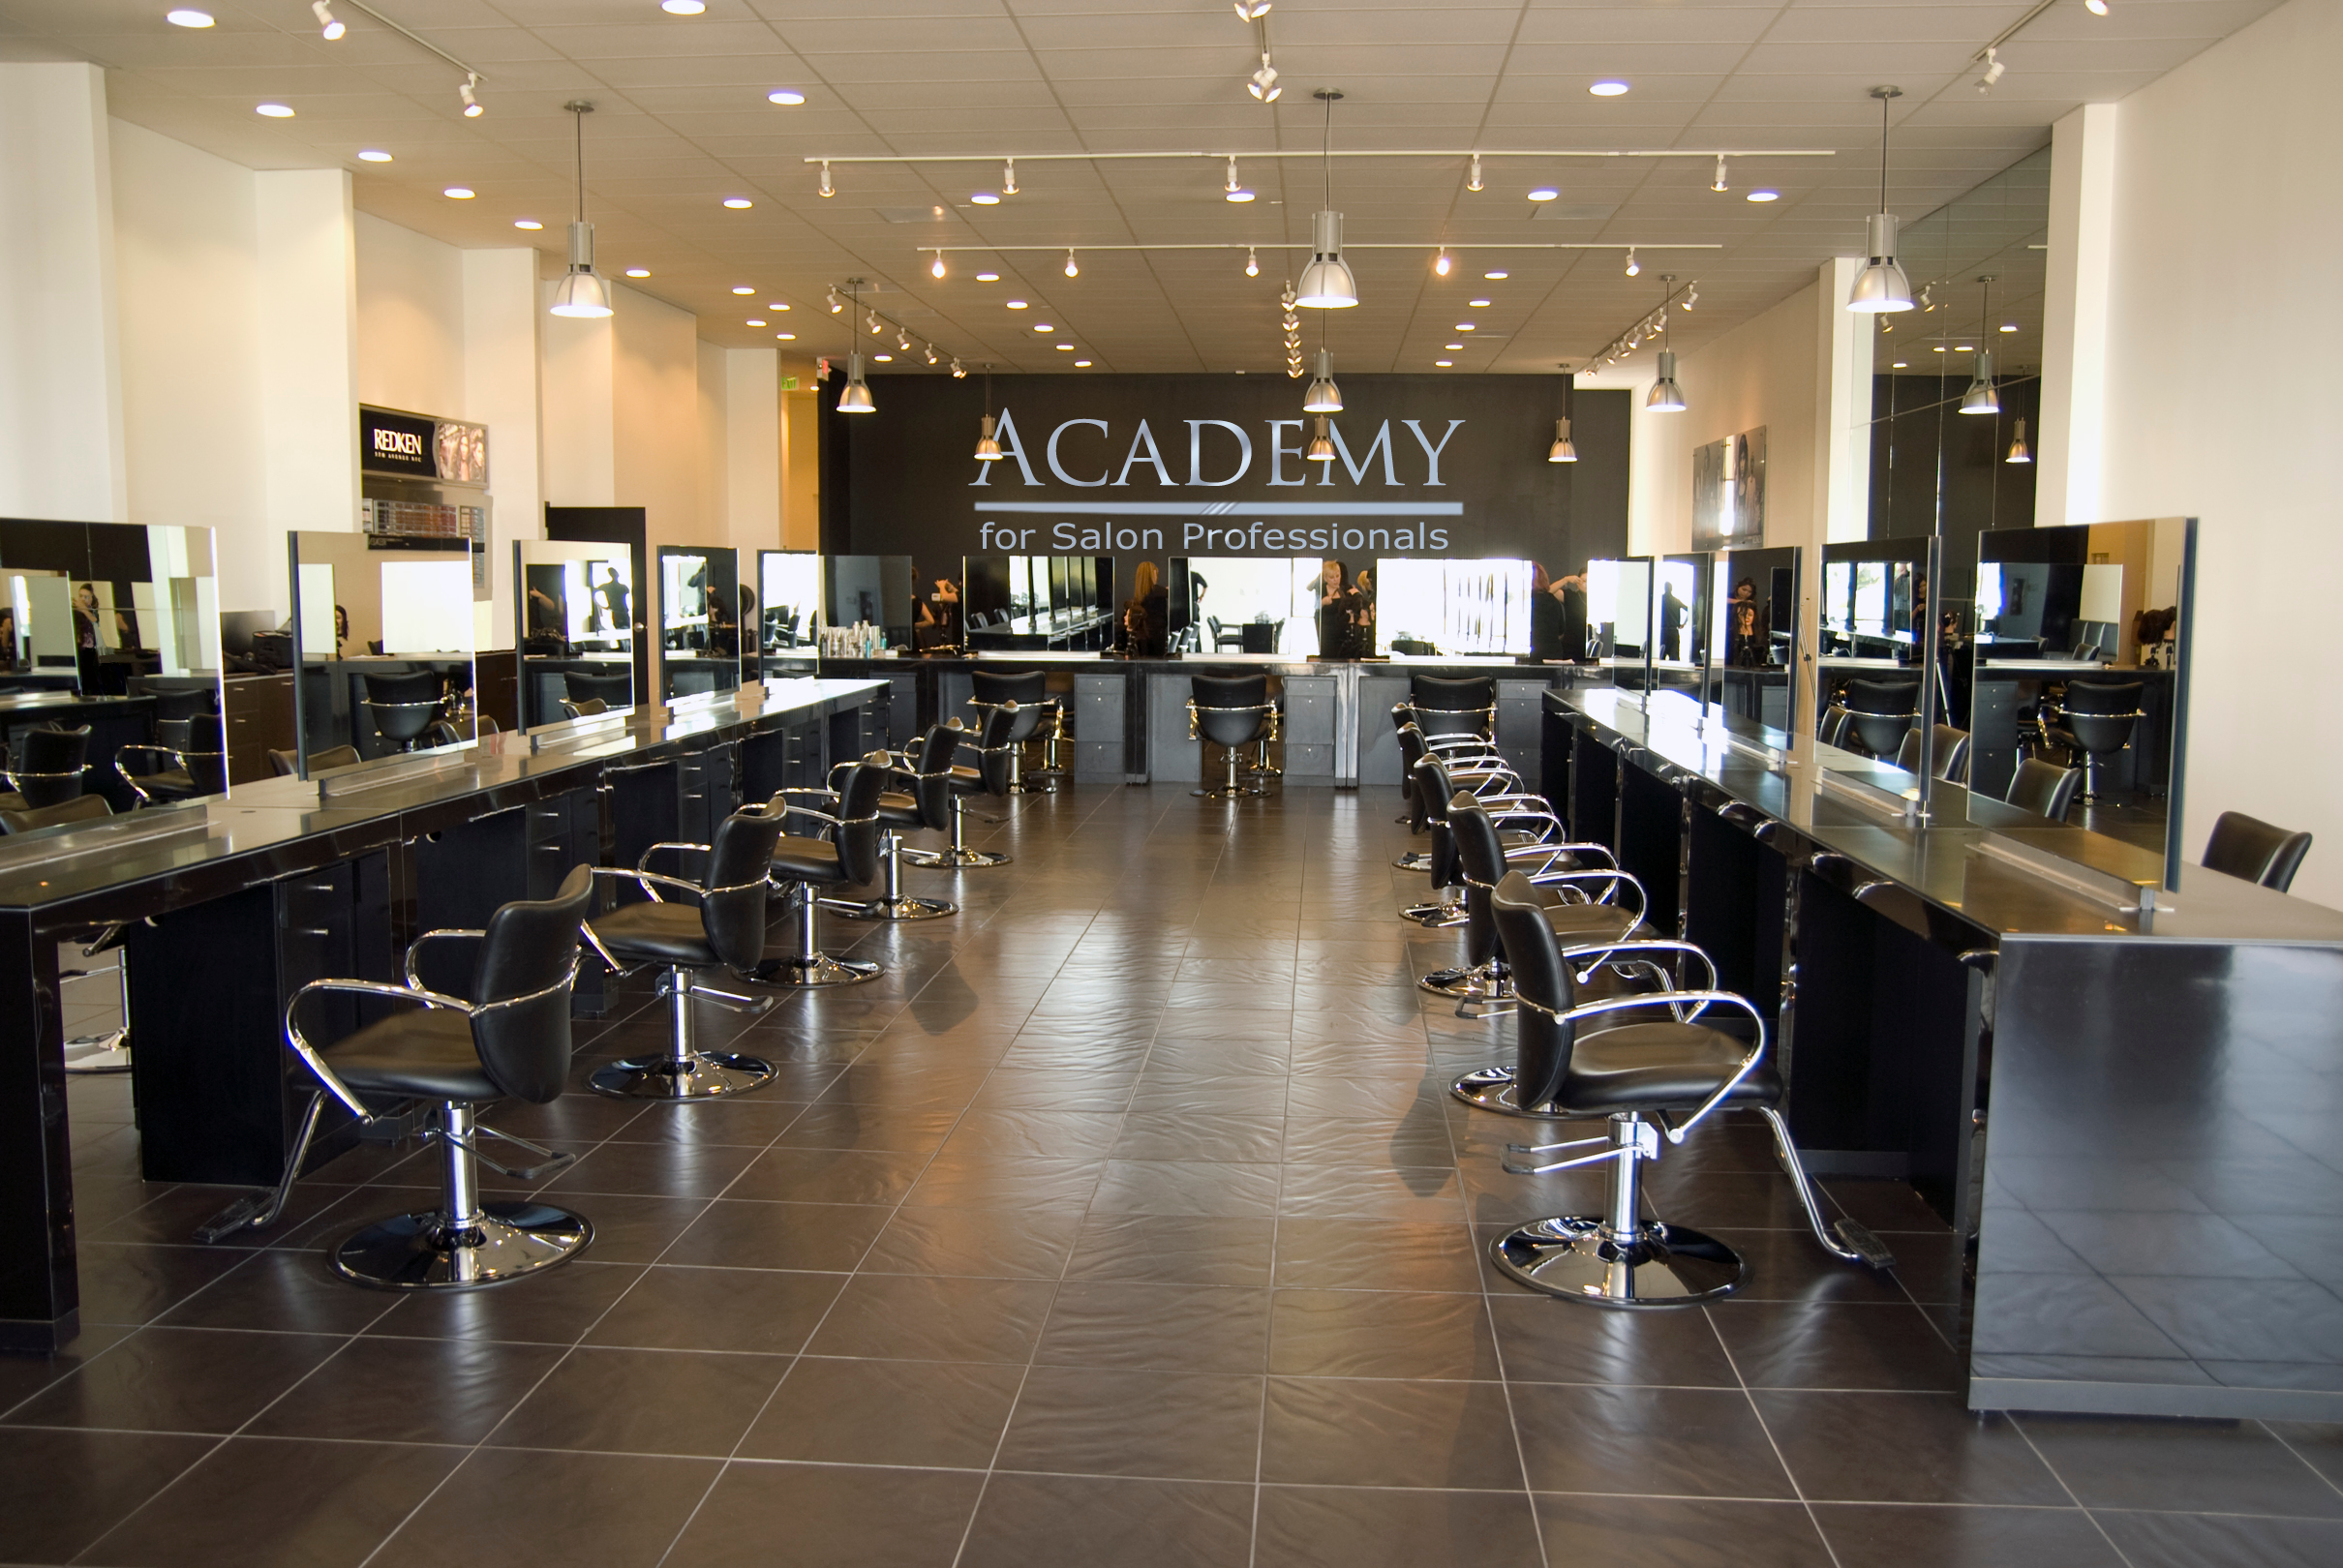 Academy for salon professionals member santa clara ca for Academy of salon professionals santa clara